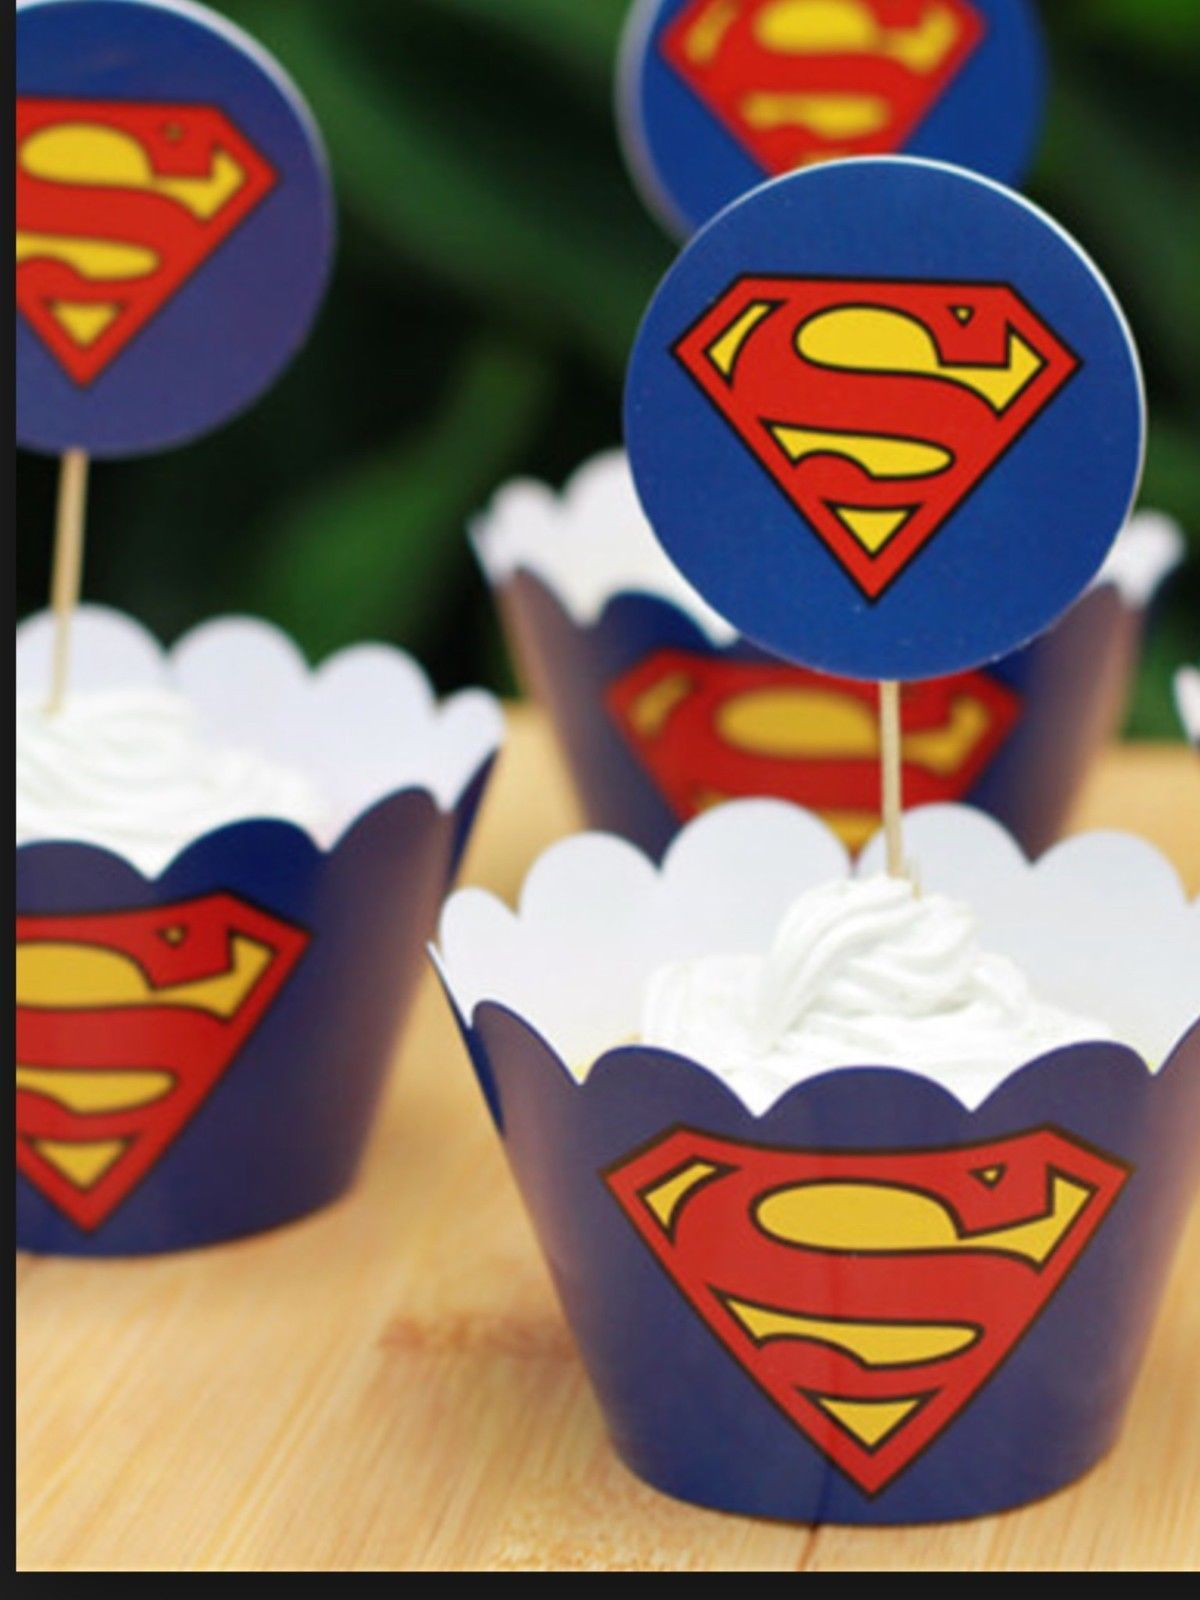 Superman Cupcake cup cake cases toppers wrappers party decoration